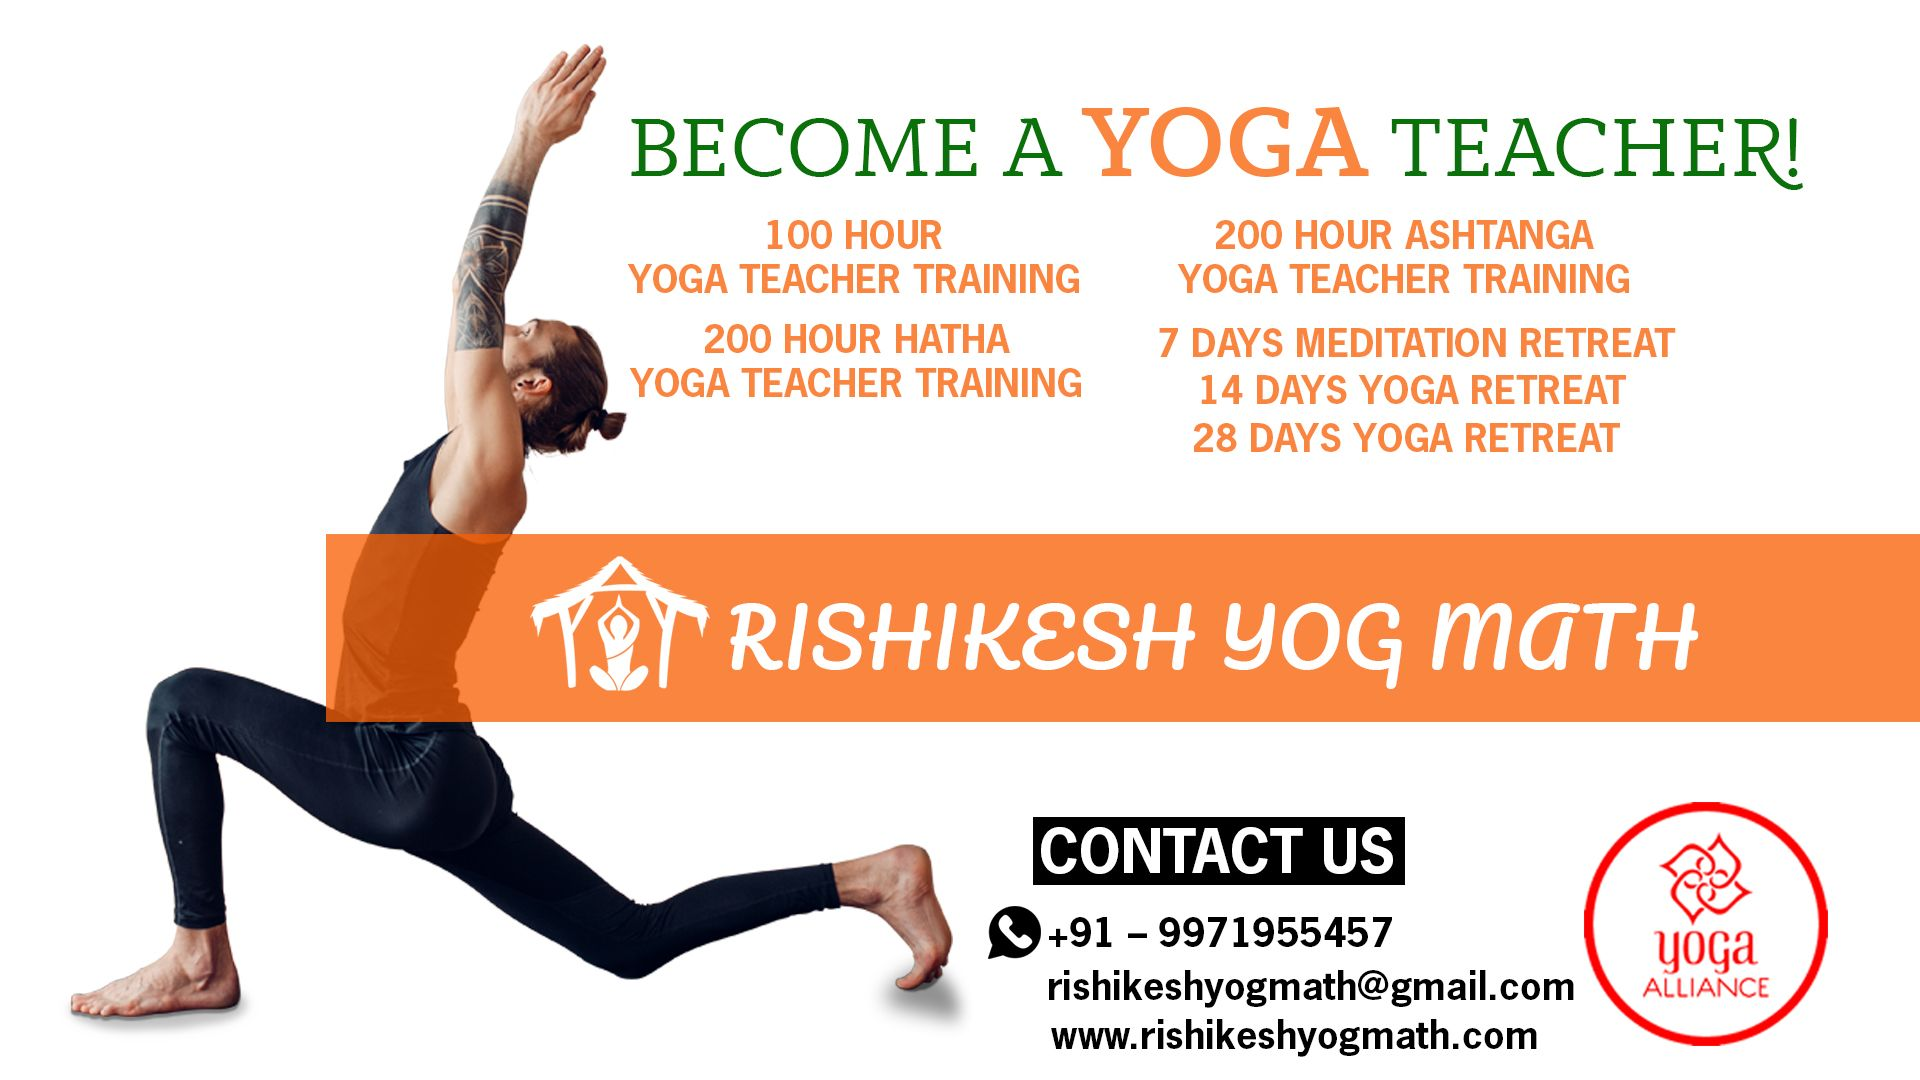 d66eecbe84 Yoga is not about touching your Toes! RYM, Rishikesh holds many years  experience bringing our world renowned yoga training to students from all  over the ...